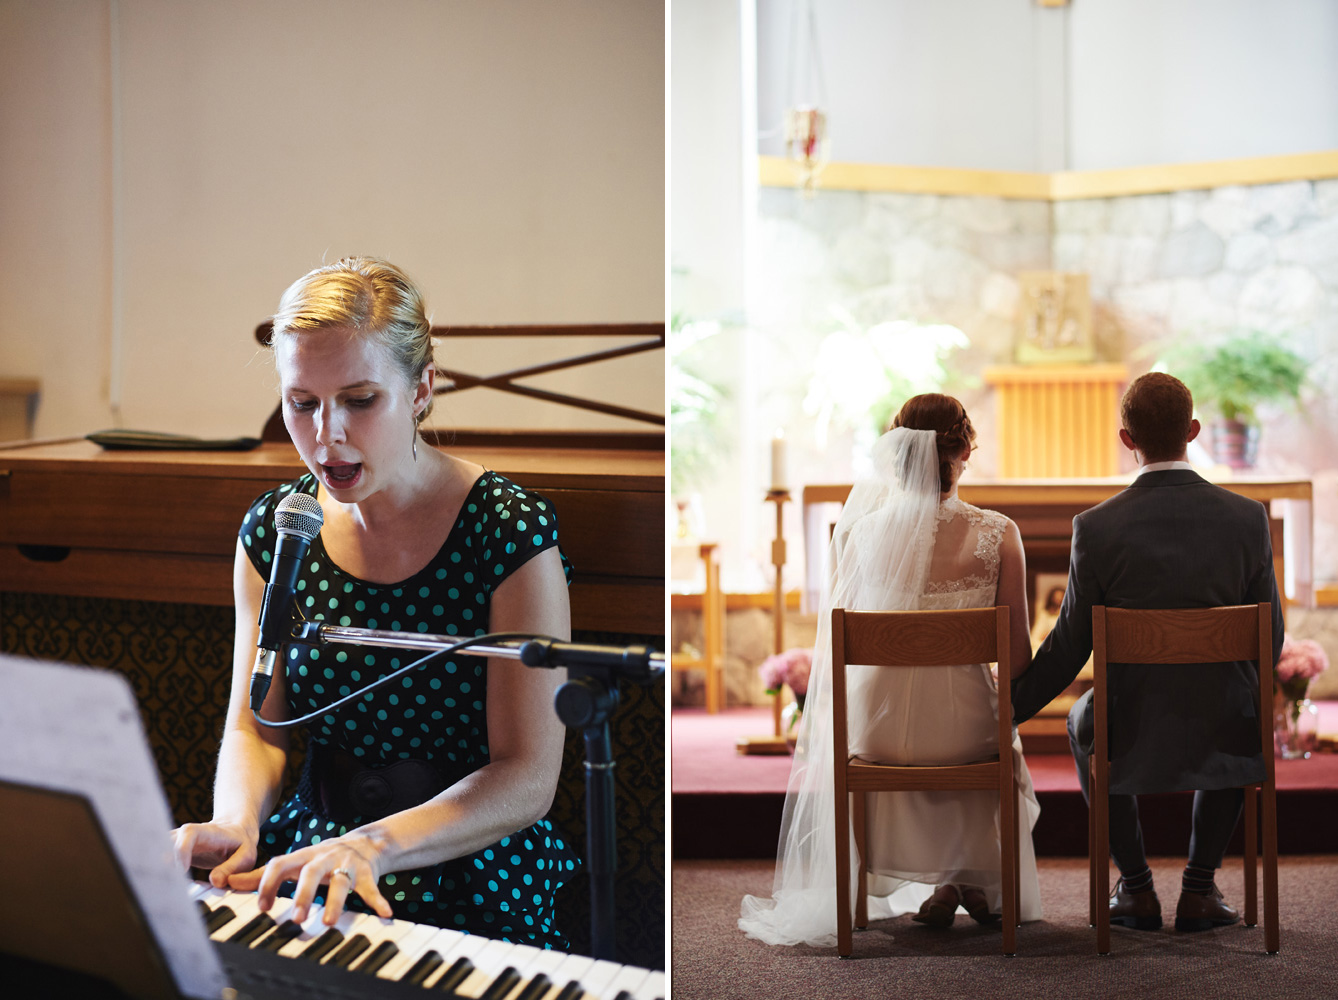 wedding-singer-in-ceremony-playing-the-piano.jpg